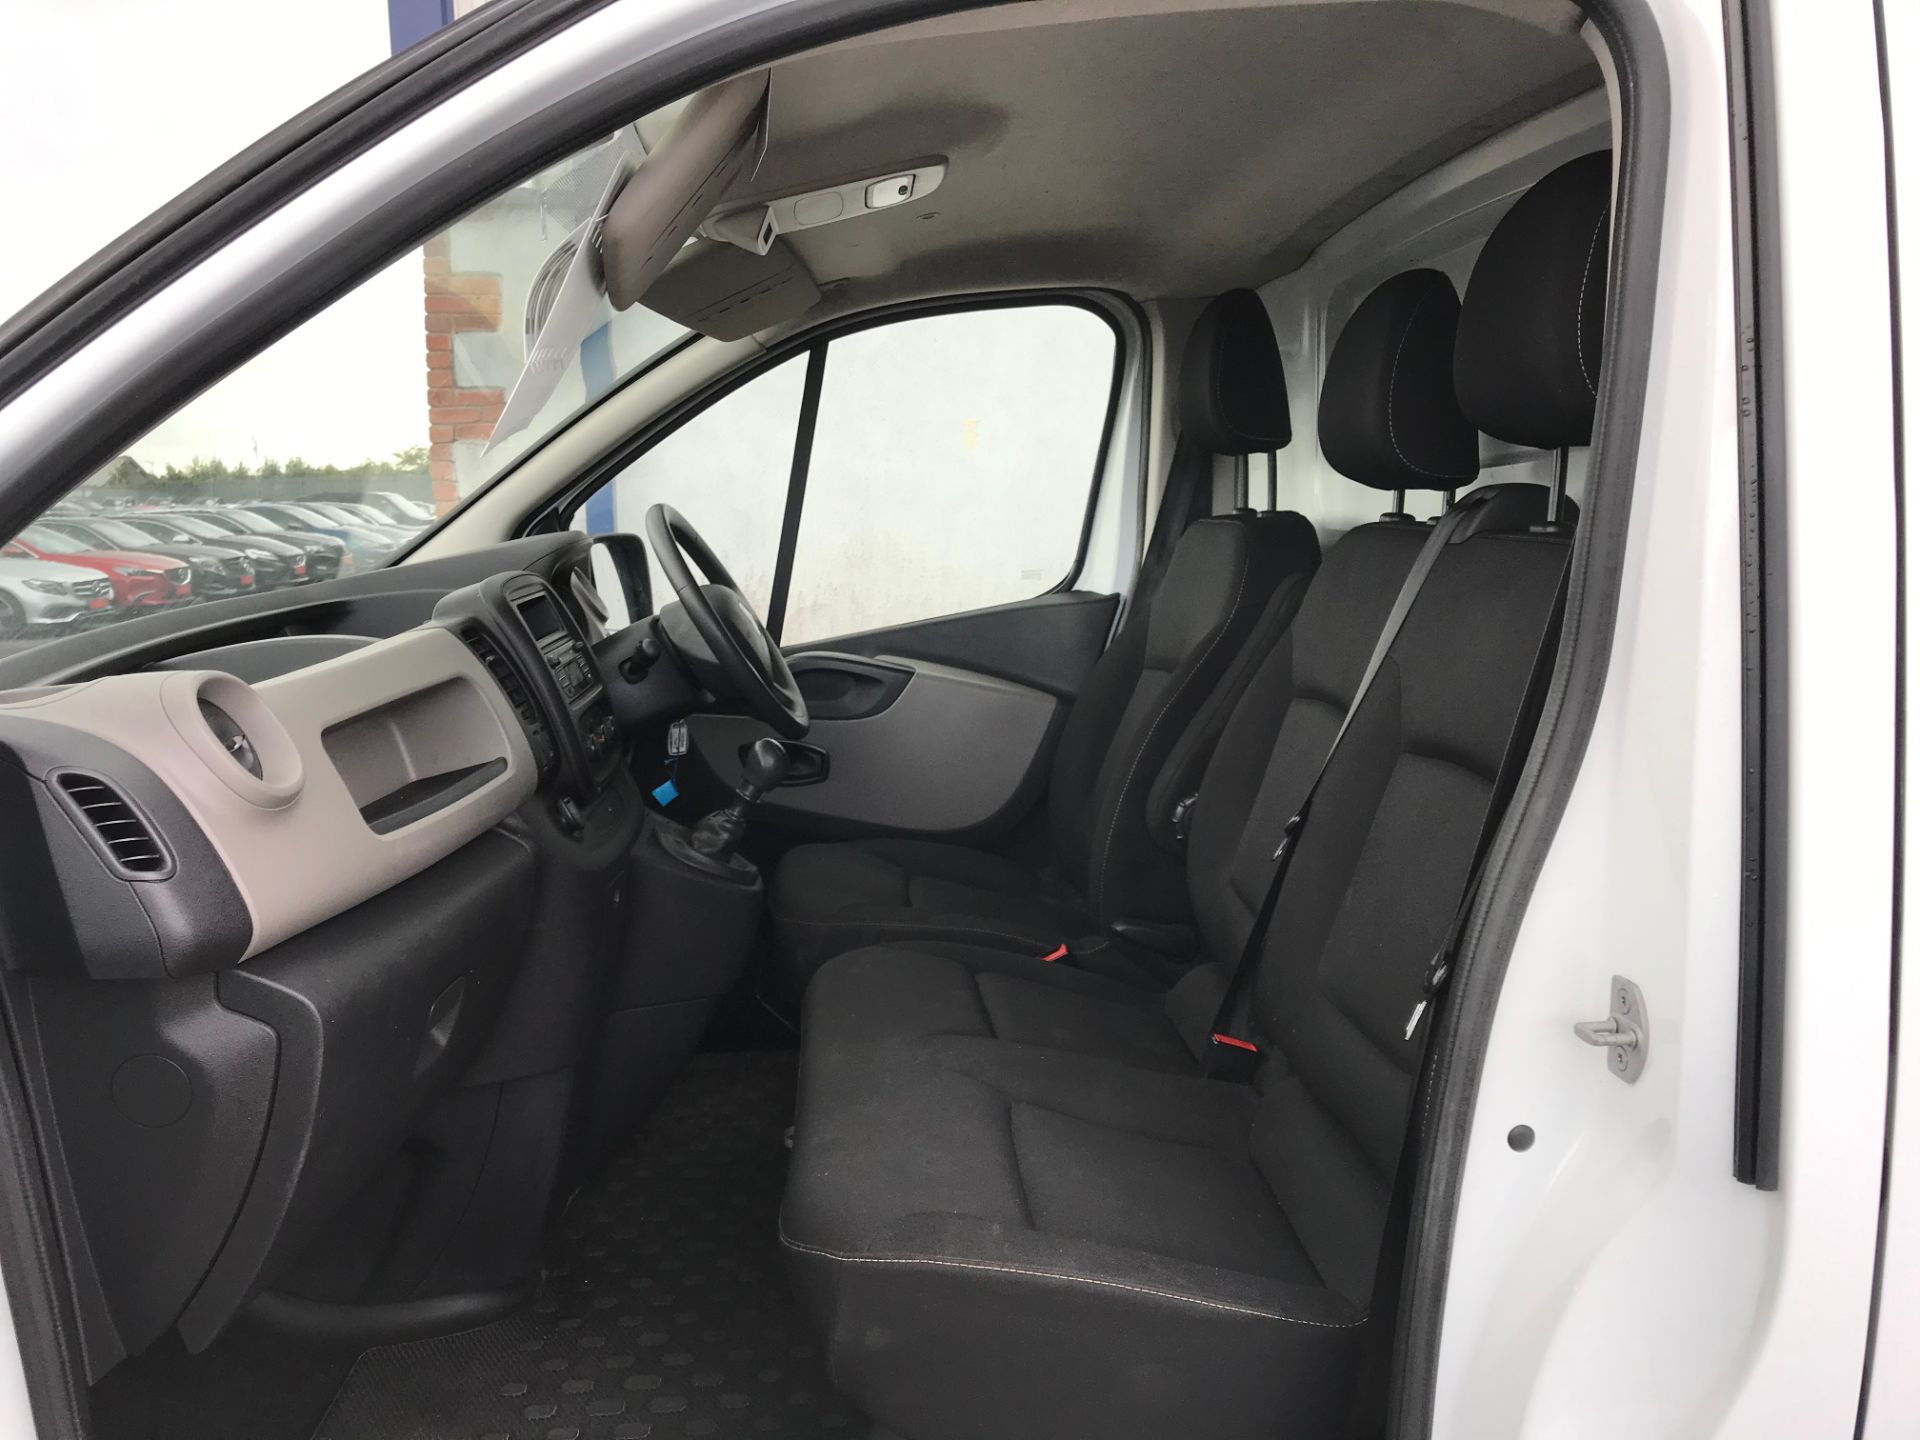 2017 Renault Trafic LL29 DCI 120 Business 3DR (171D25450) Image 10